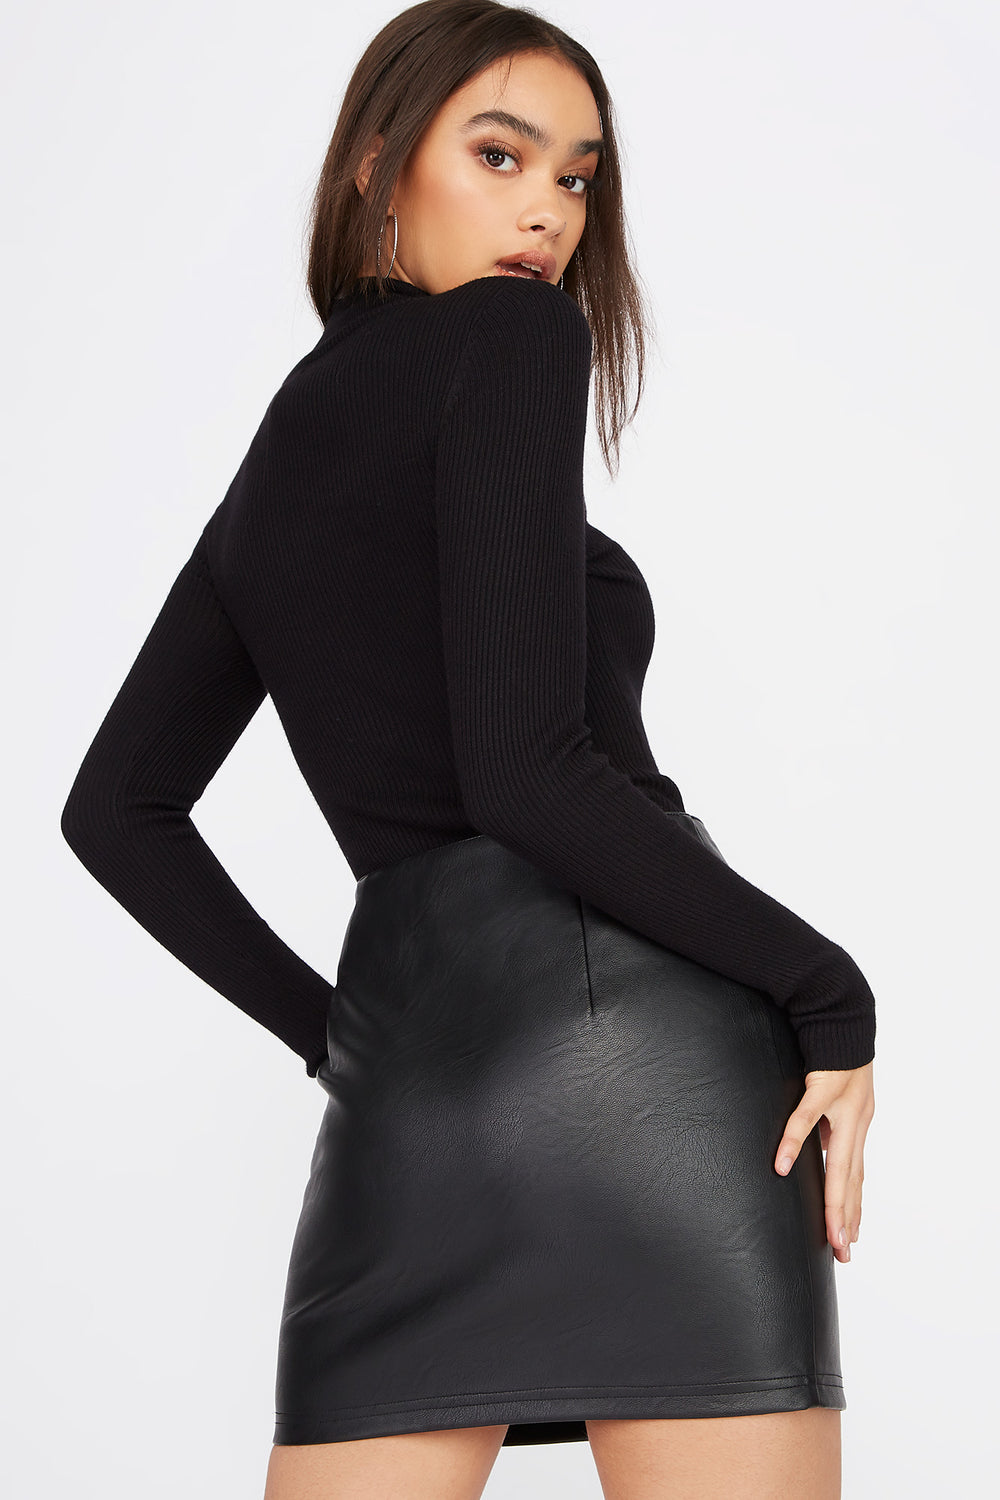 Turtleneck Ribbed Long Sleeve Black